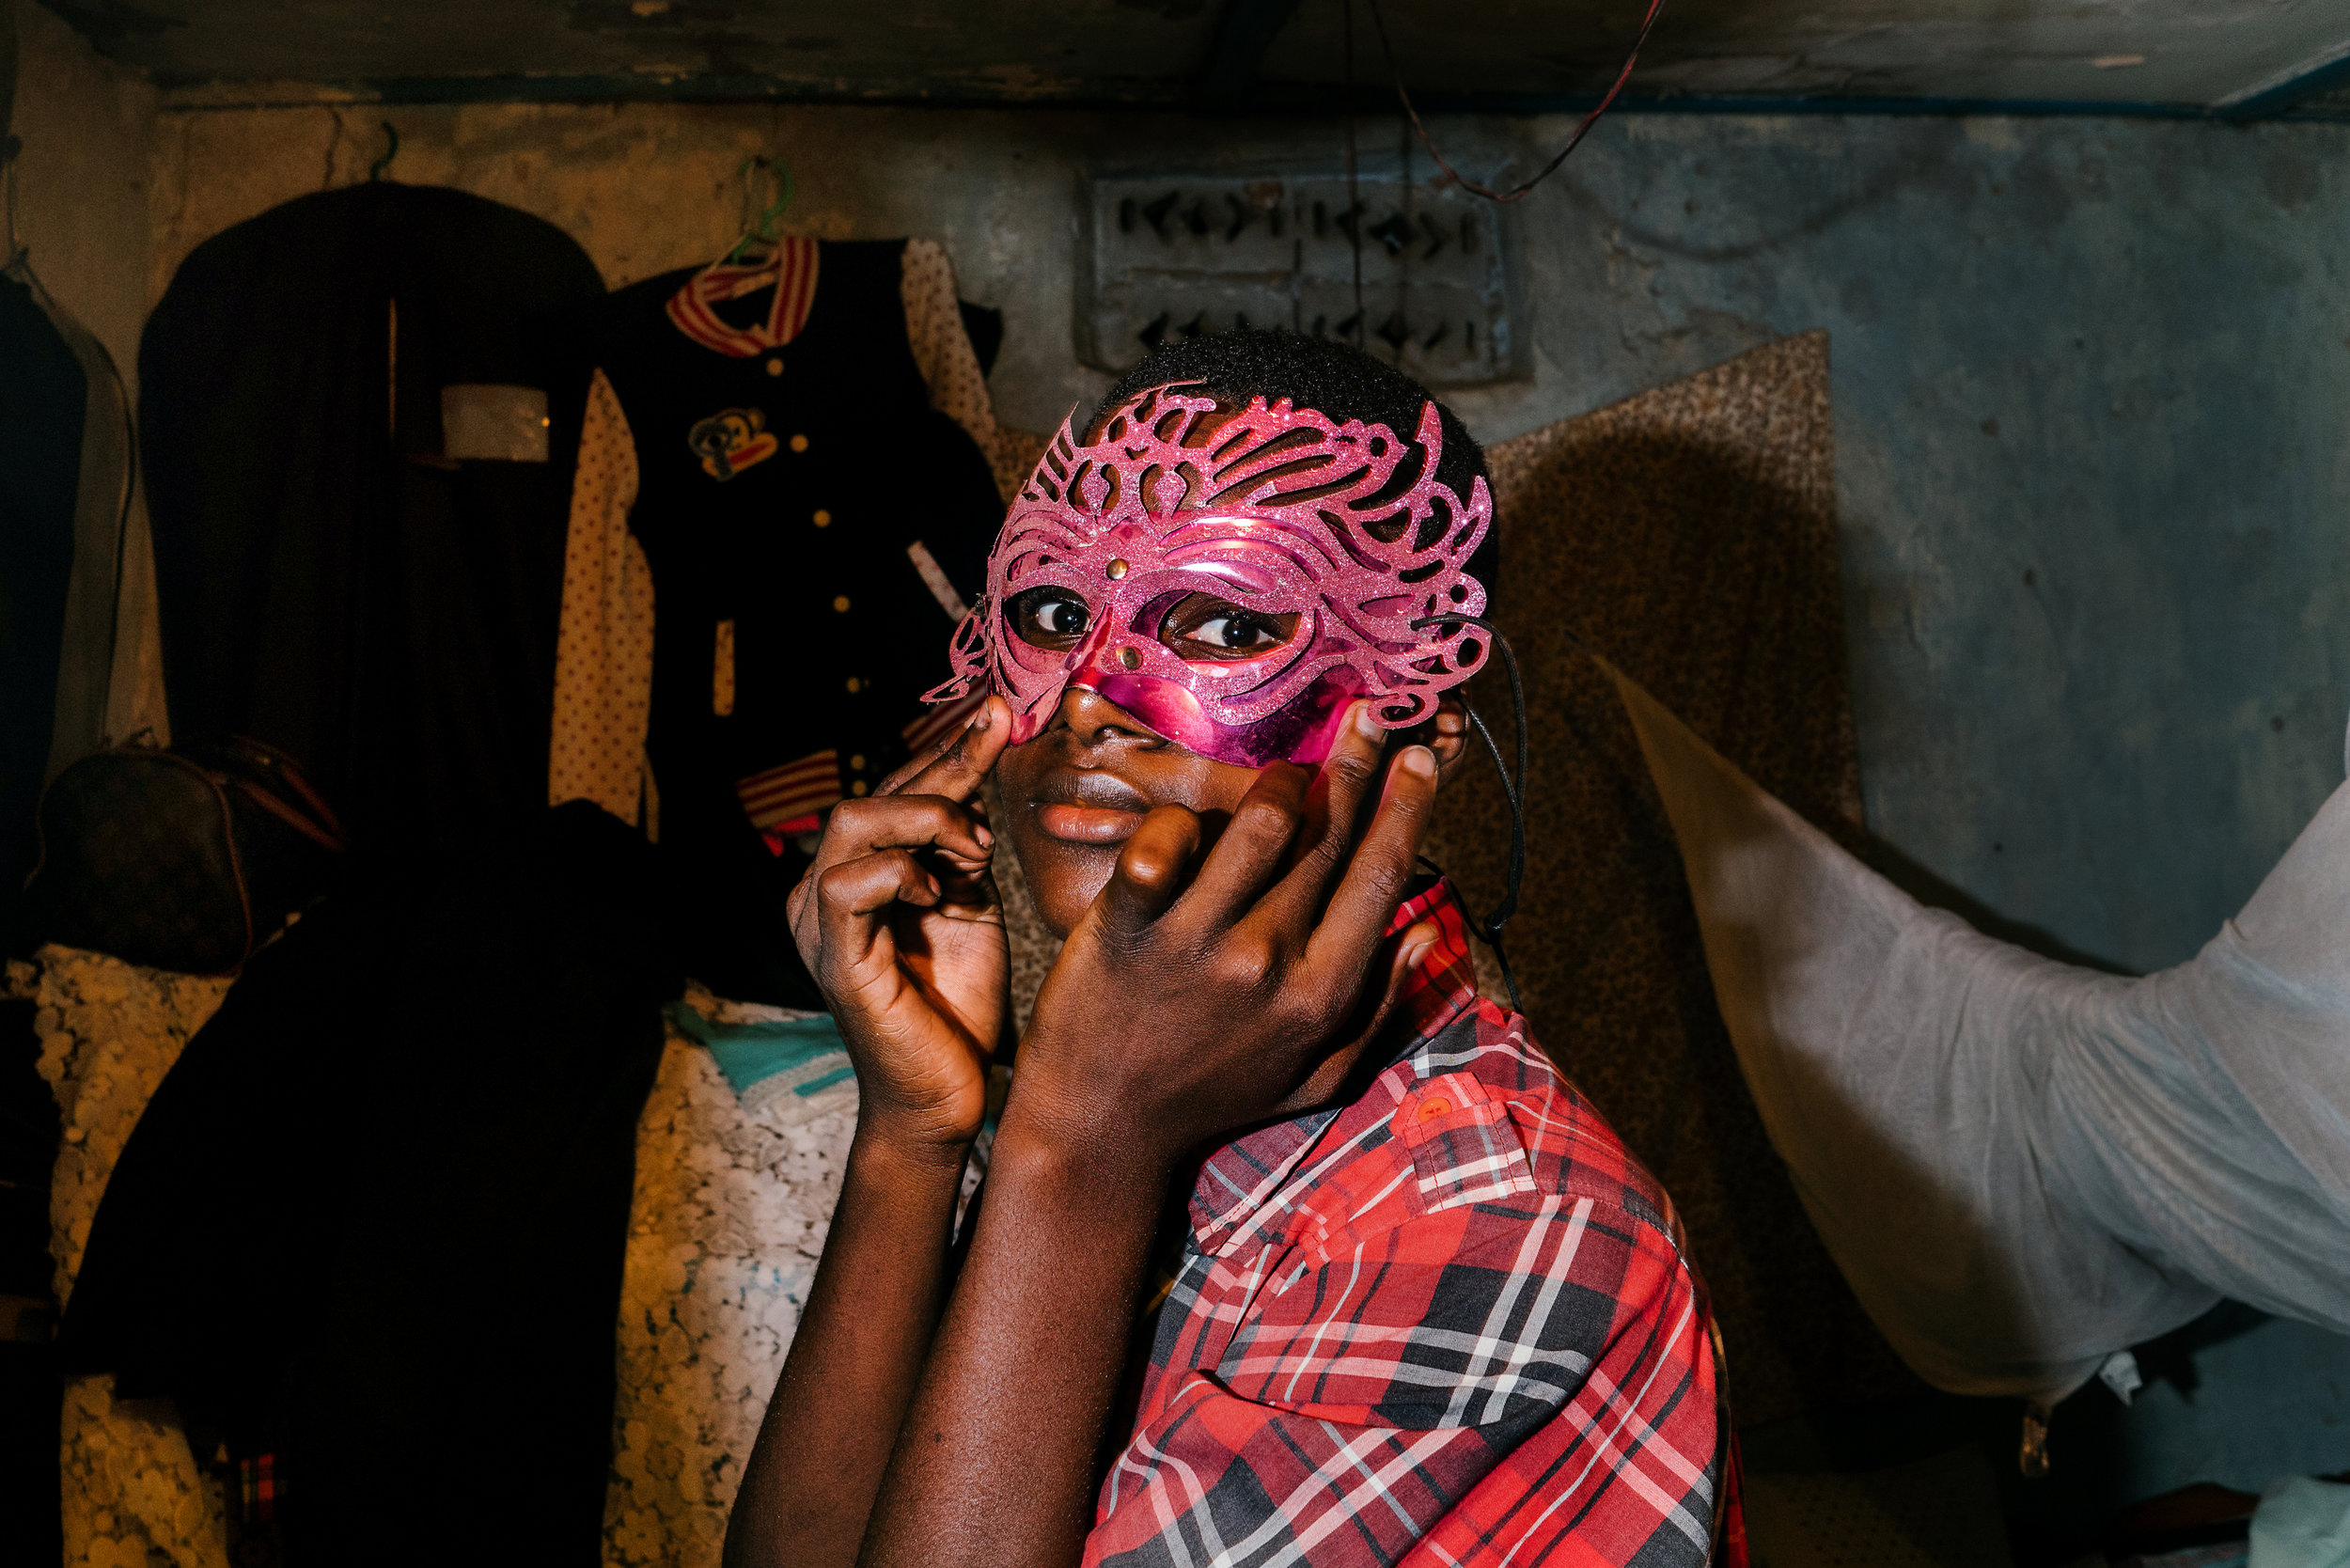 A young transgender woman poses for a portrait wearing a mask from a pride event the previous year. She was kicked out of her home after her parents found out she was trans. She found shelter and camaraderie at the Children of the Sun safe house.